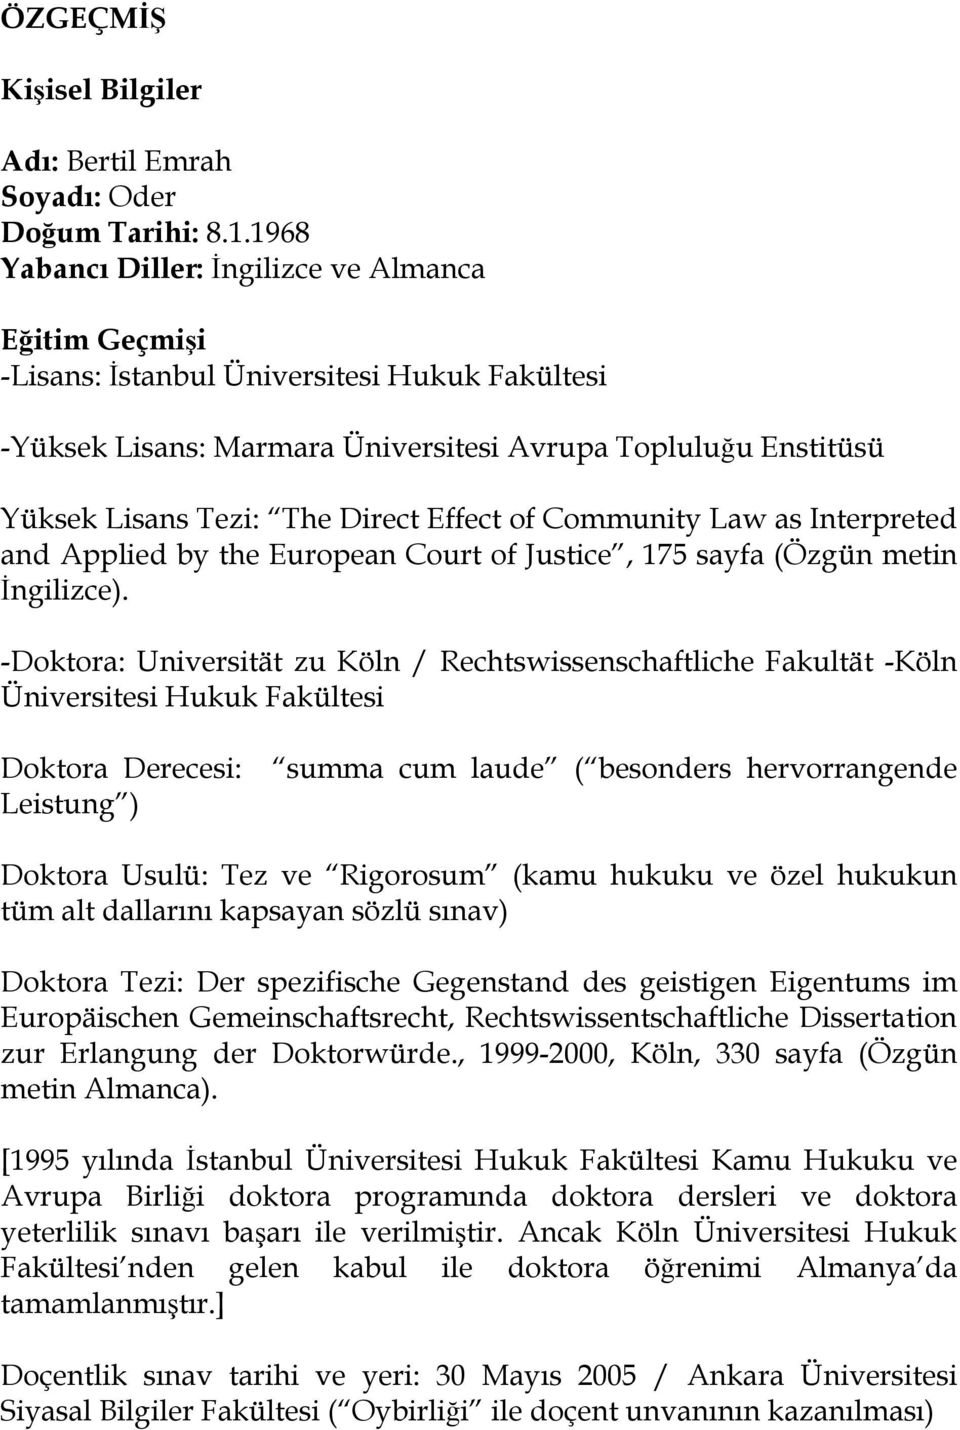 Effect of Community Law as Interpreted and Applied by the European Court of Justice, 175 sayfa (Özgün metin İngilizce).